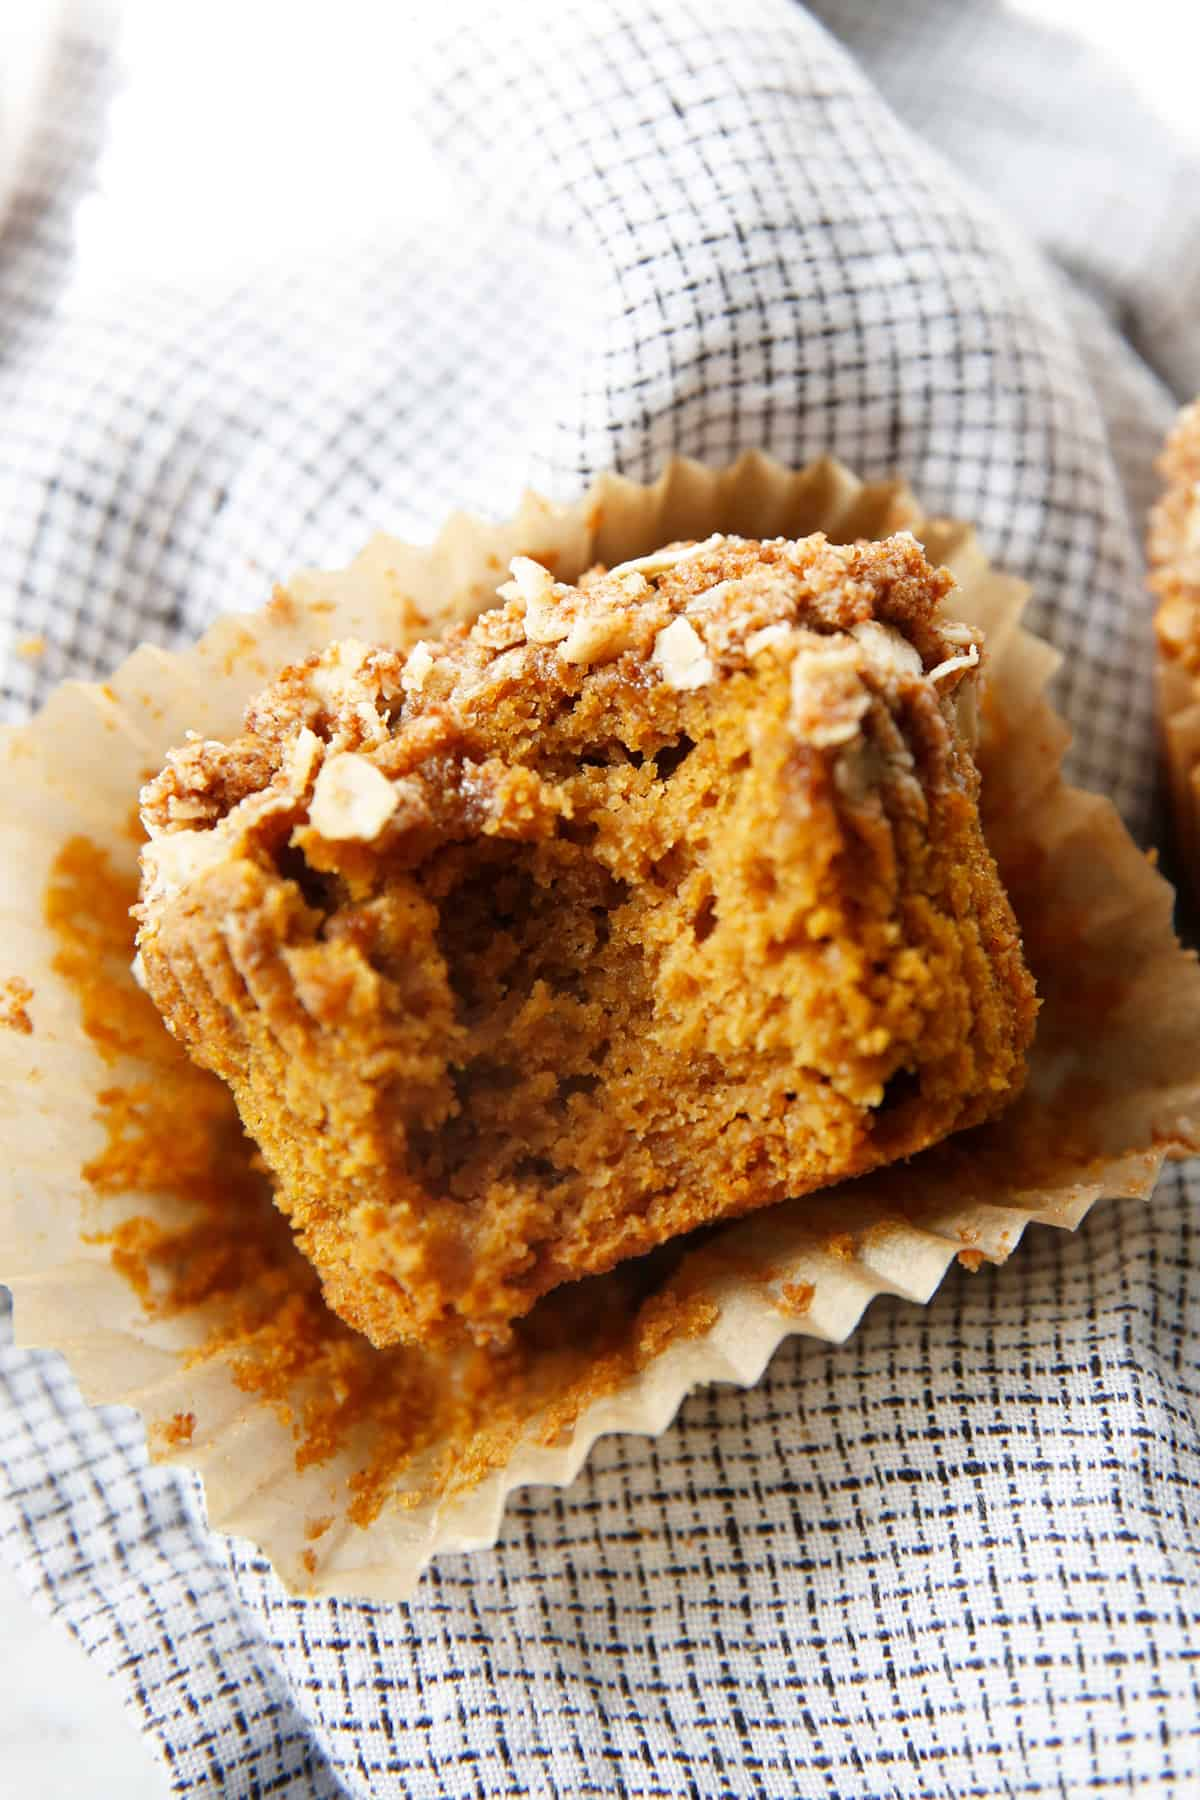 Muffins made from oat flour.